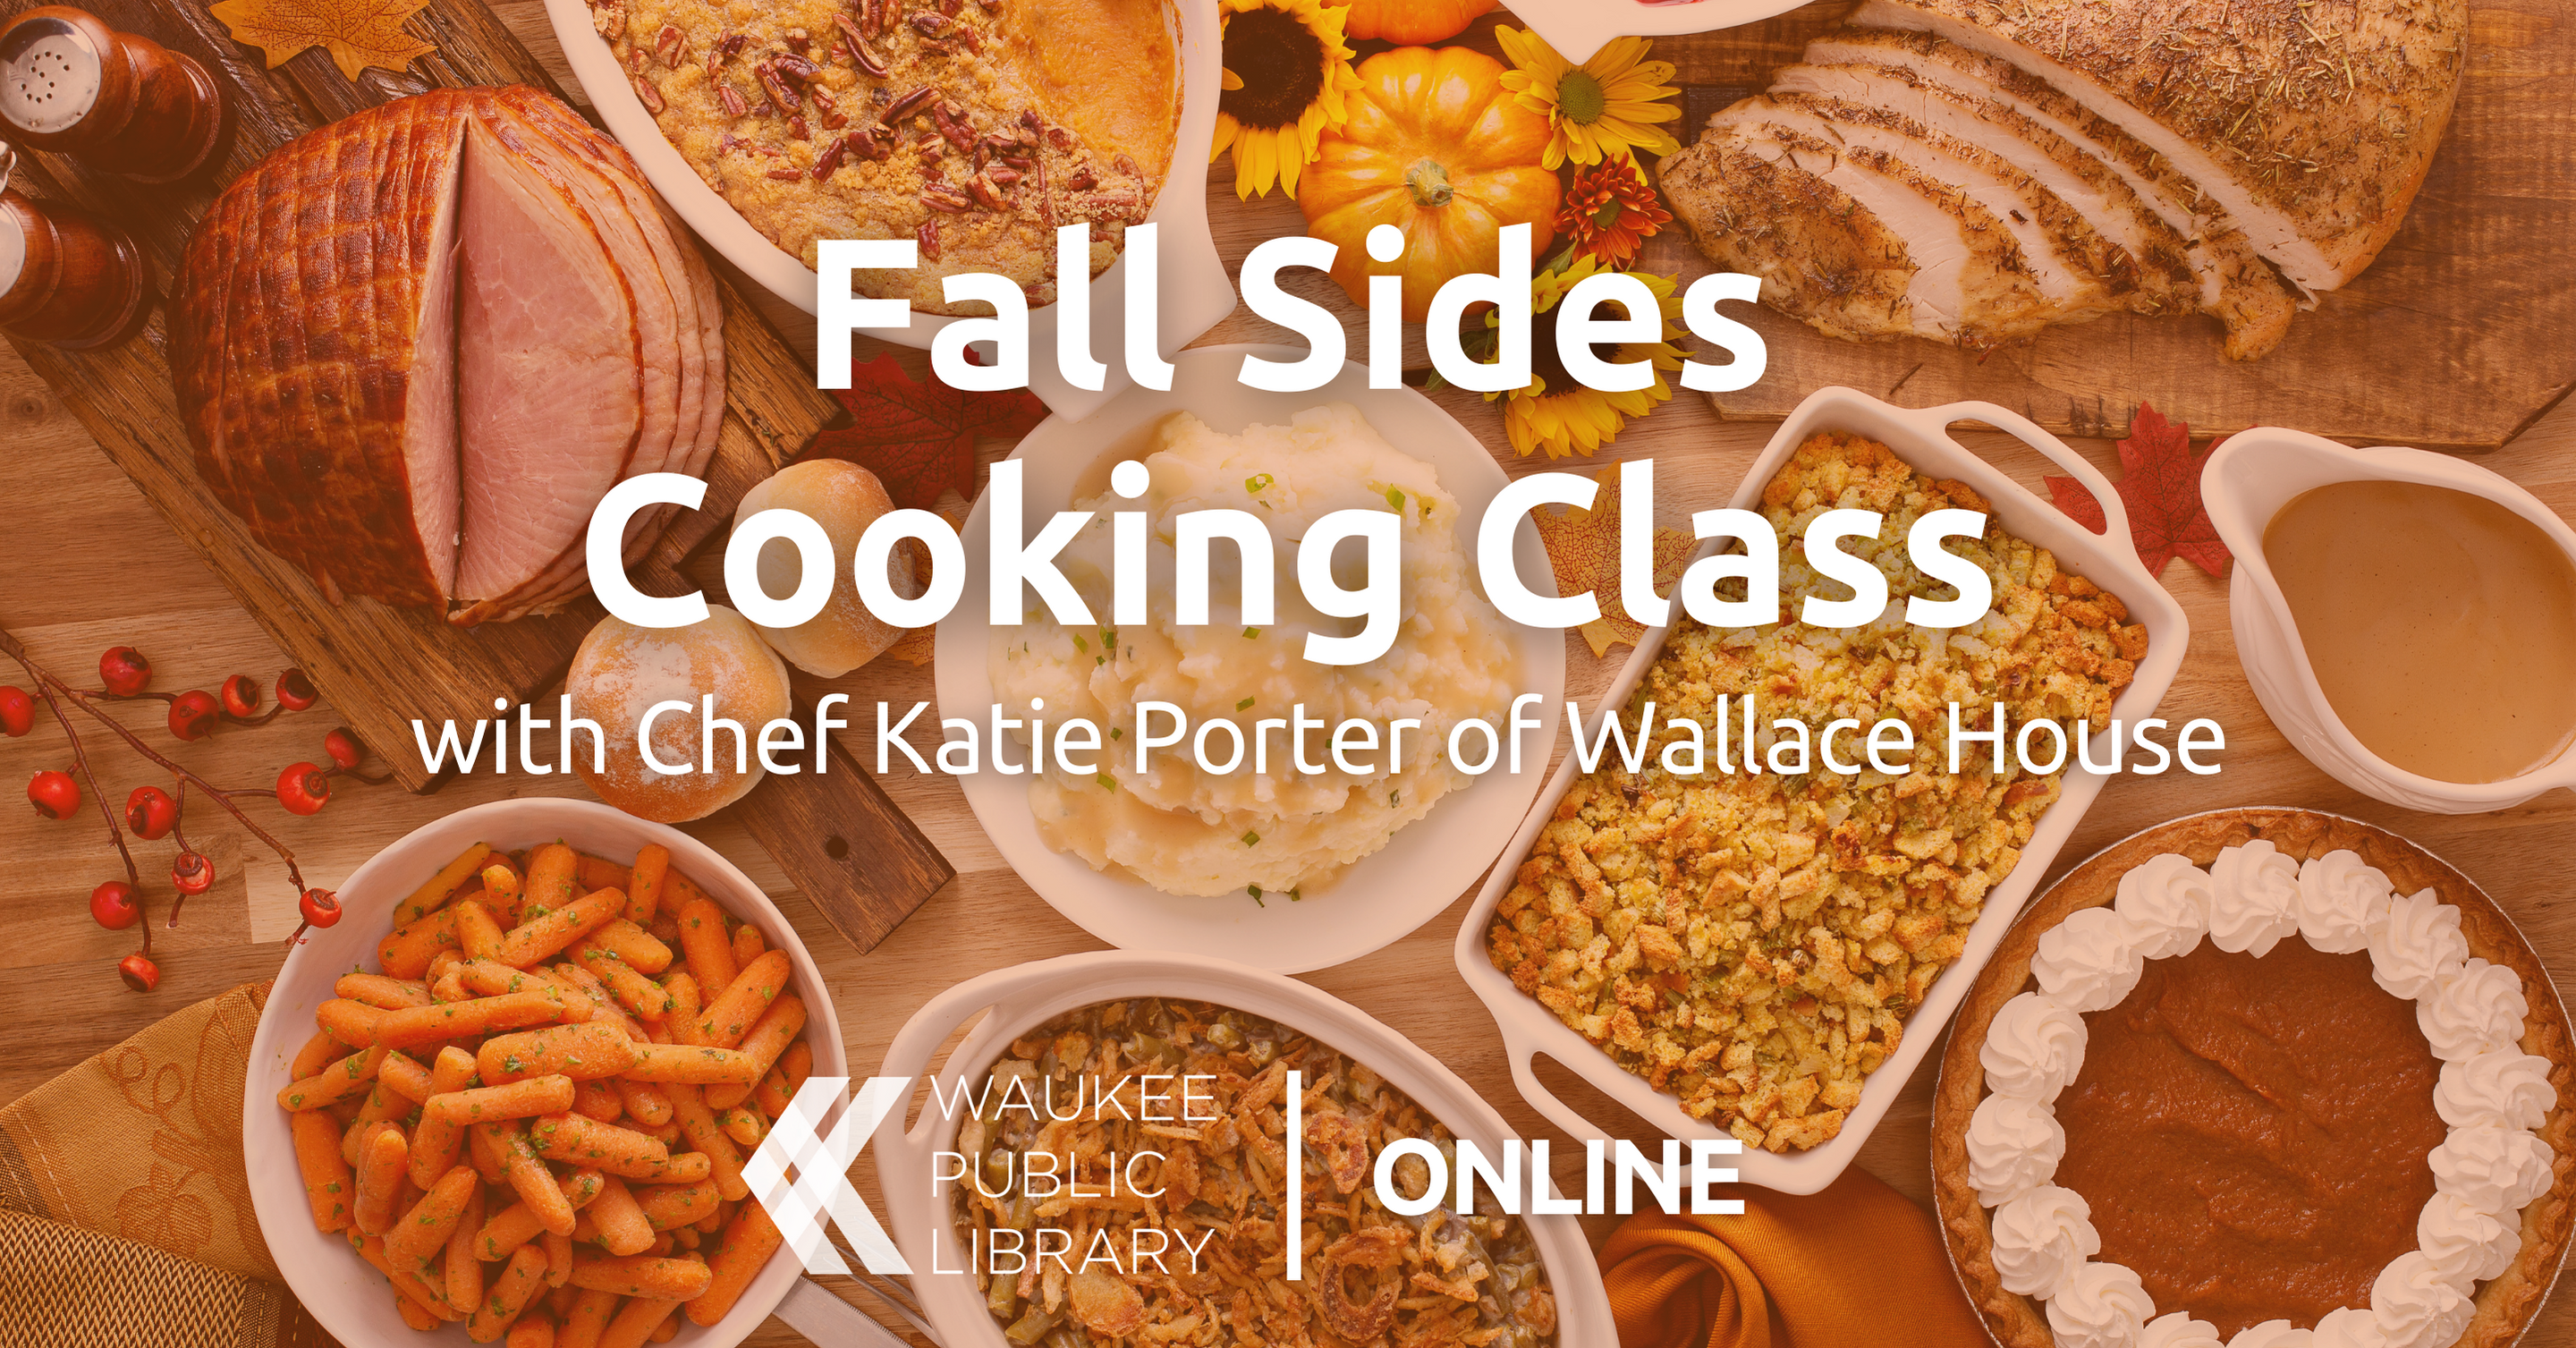 Fall Sides Cooking Class